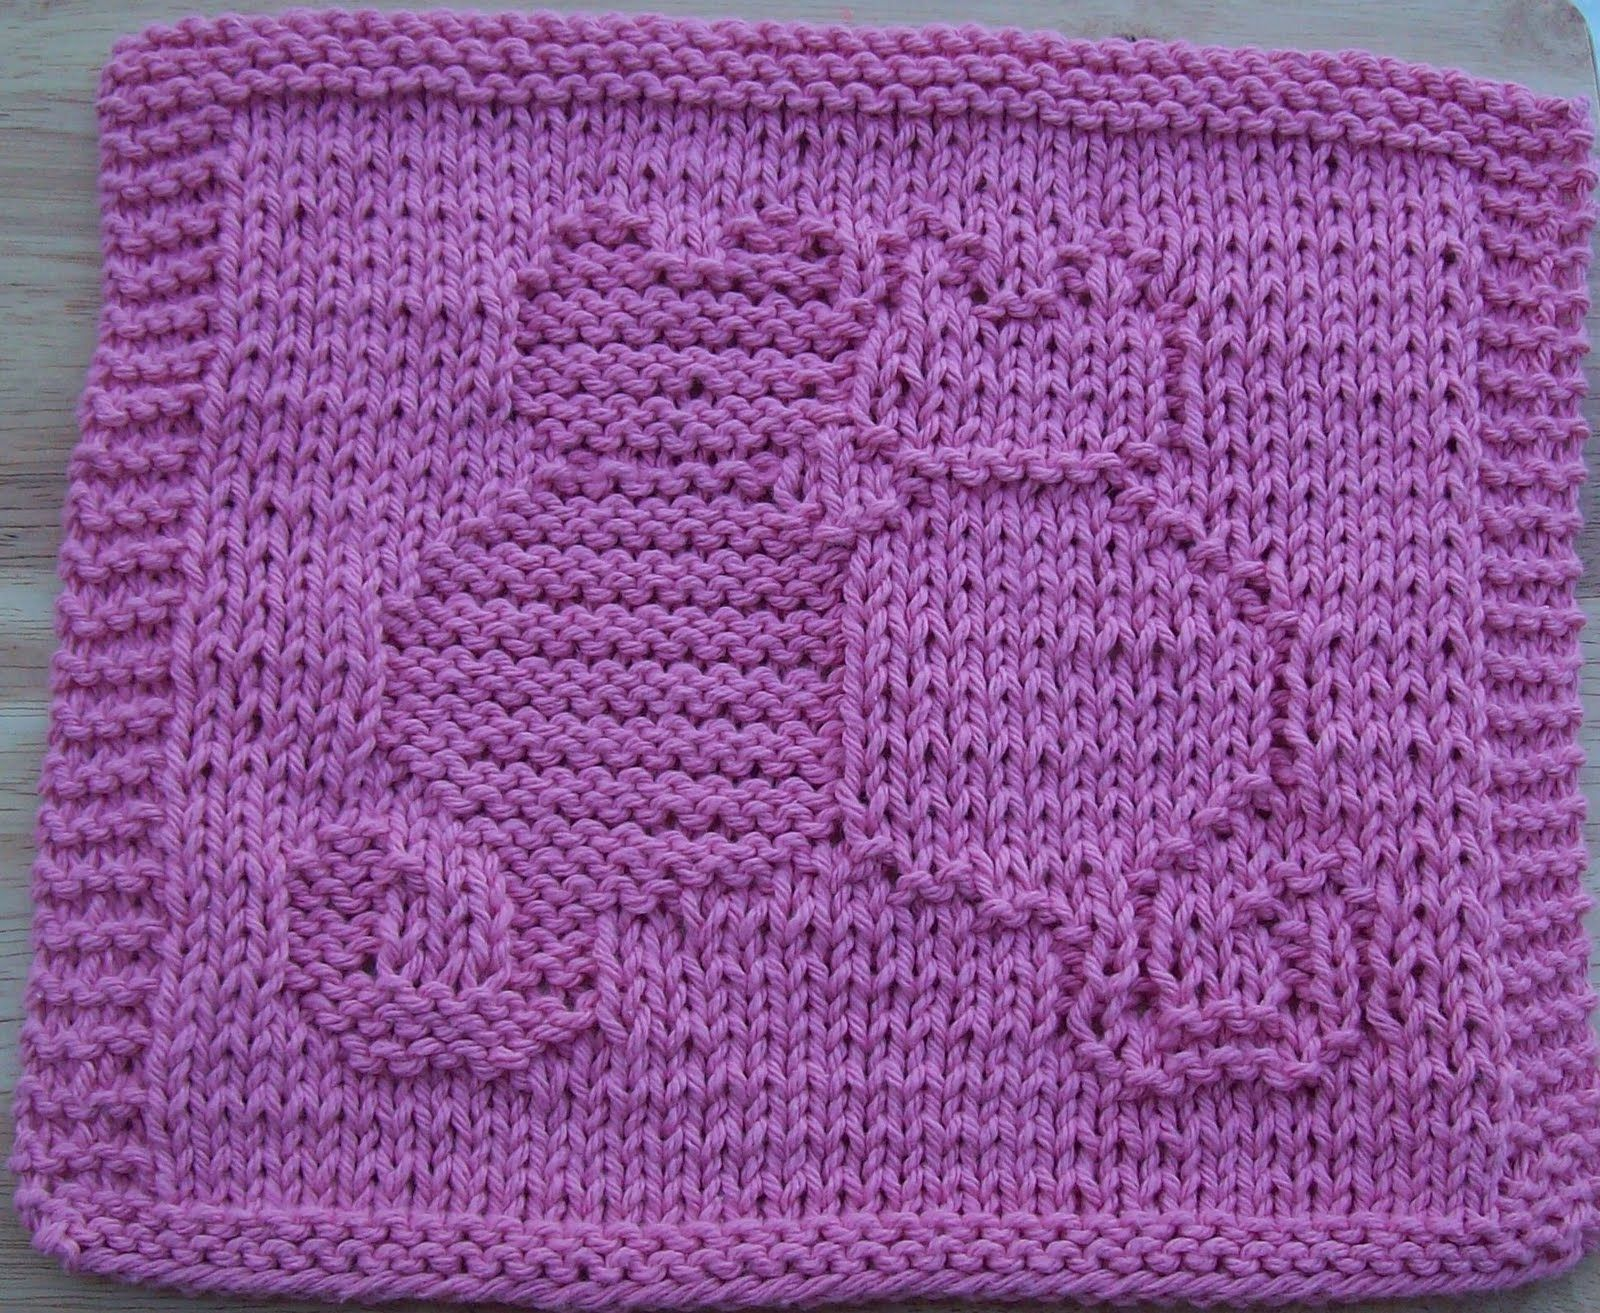 Knitted Dish Towel Pattern Magnificent Design Ideas